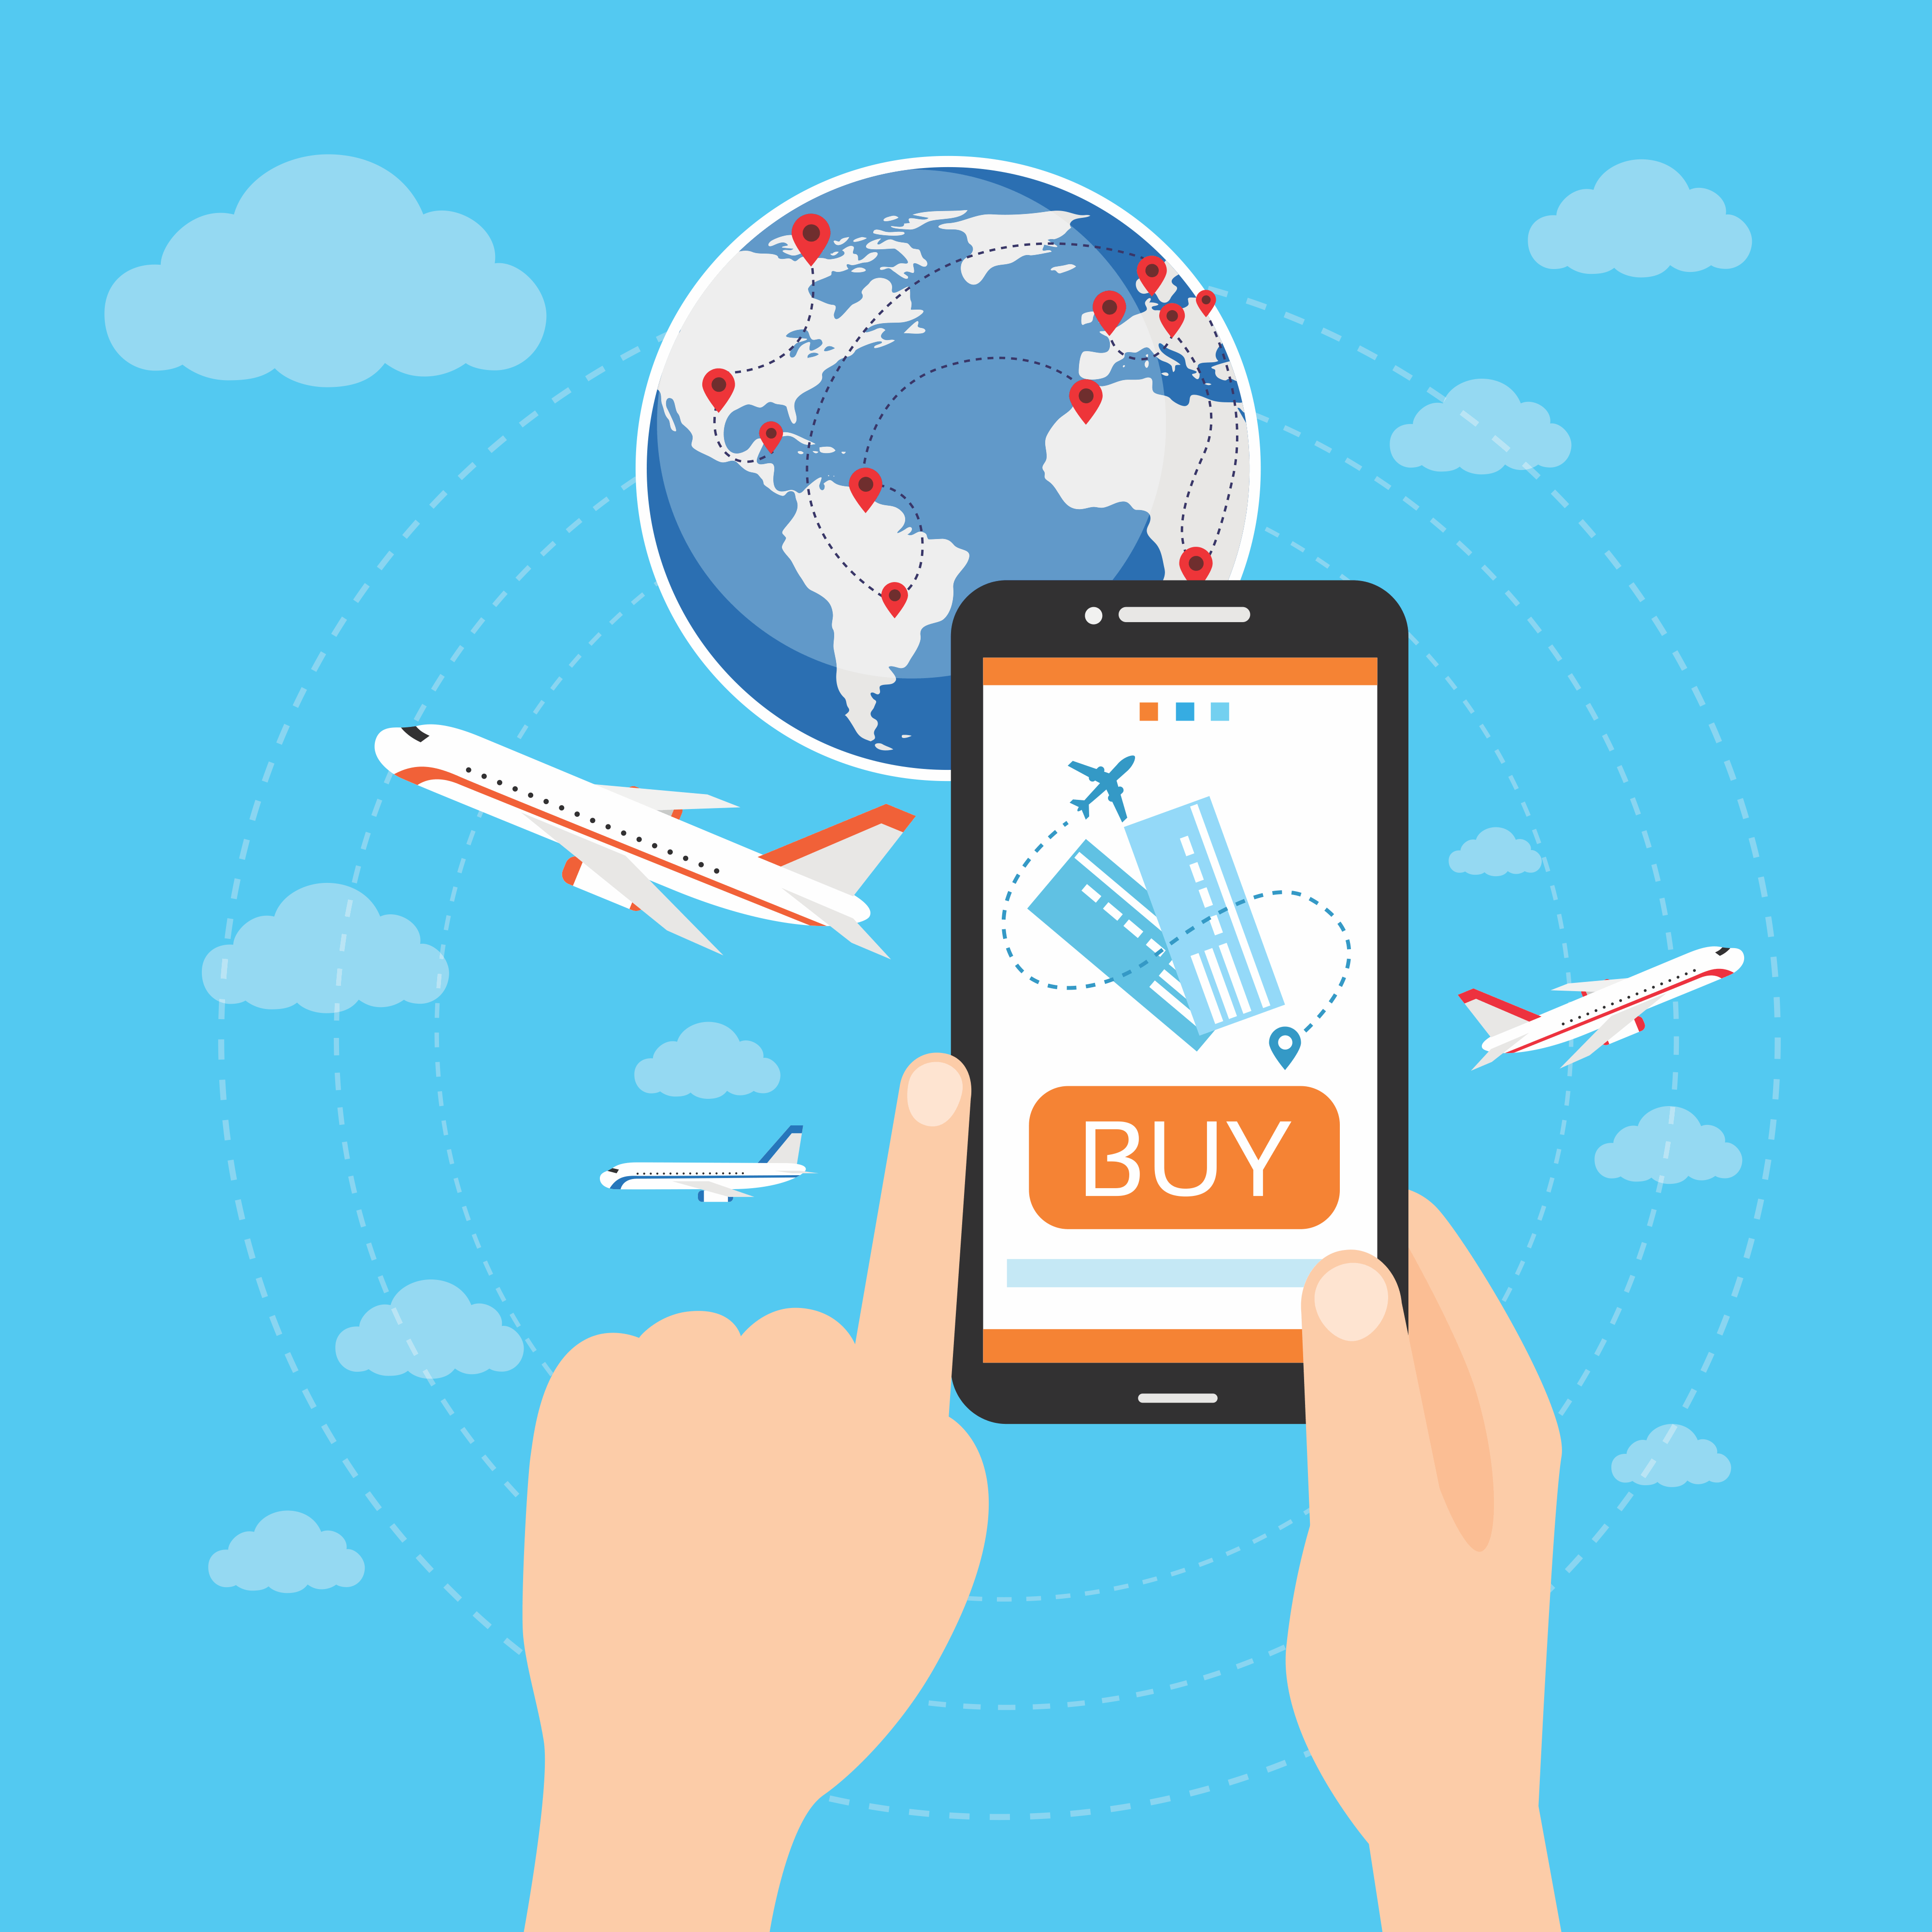 Why do corporate travel airfares increase in such a short period of time?